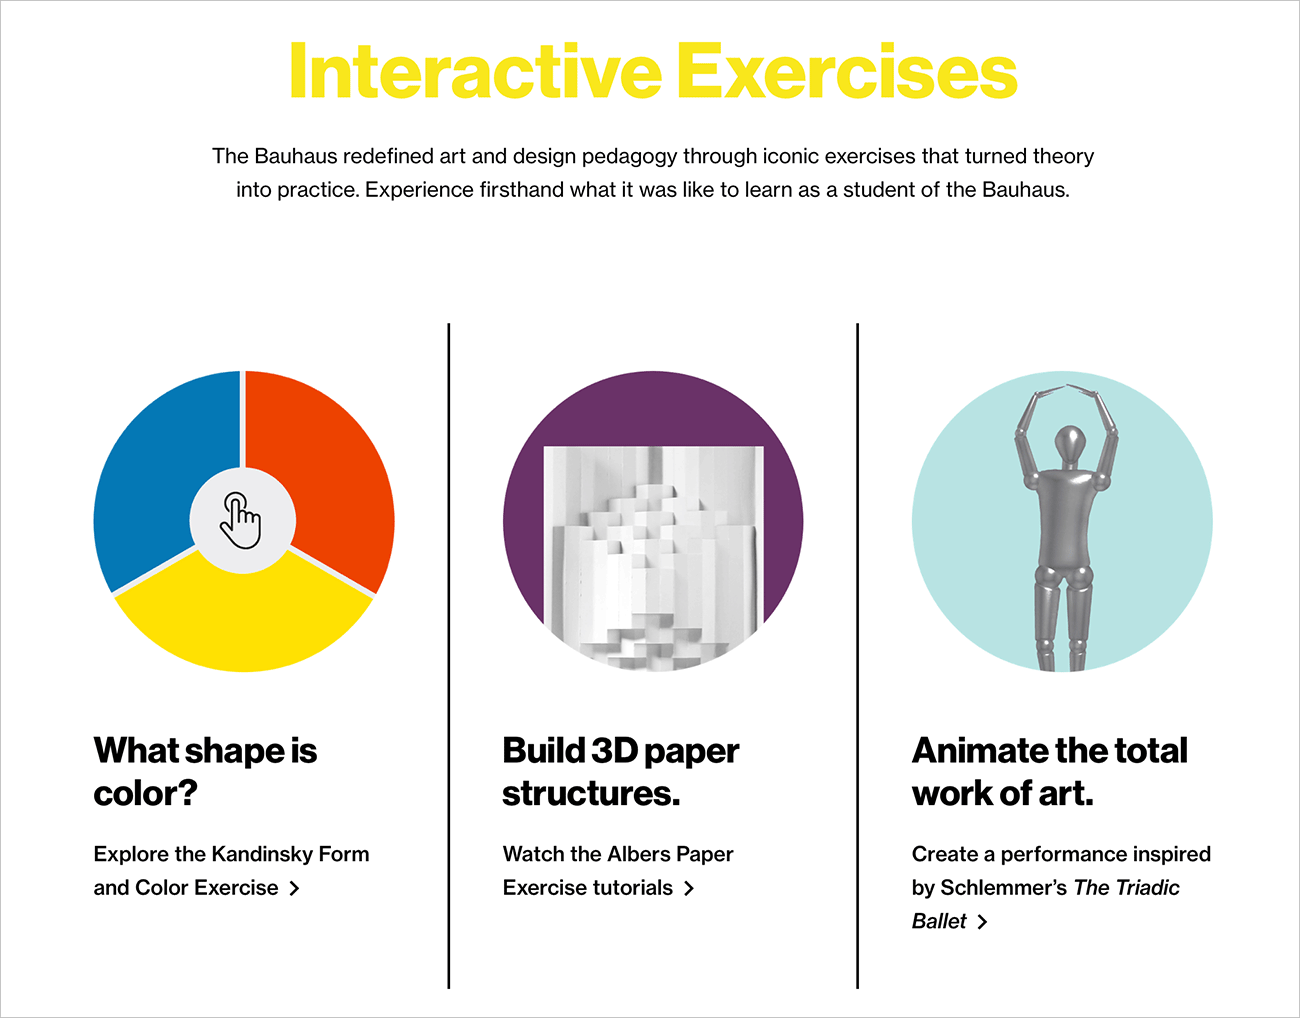 A graphic titled Interactive Exercises, showing three options: What shape is color?; Build 3D paper structures; and Animate the total work of art.